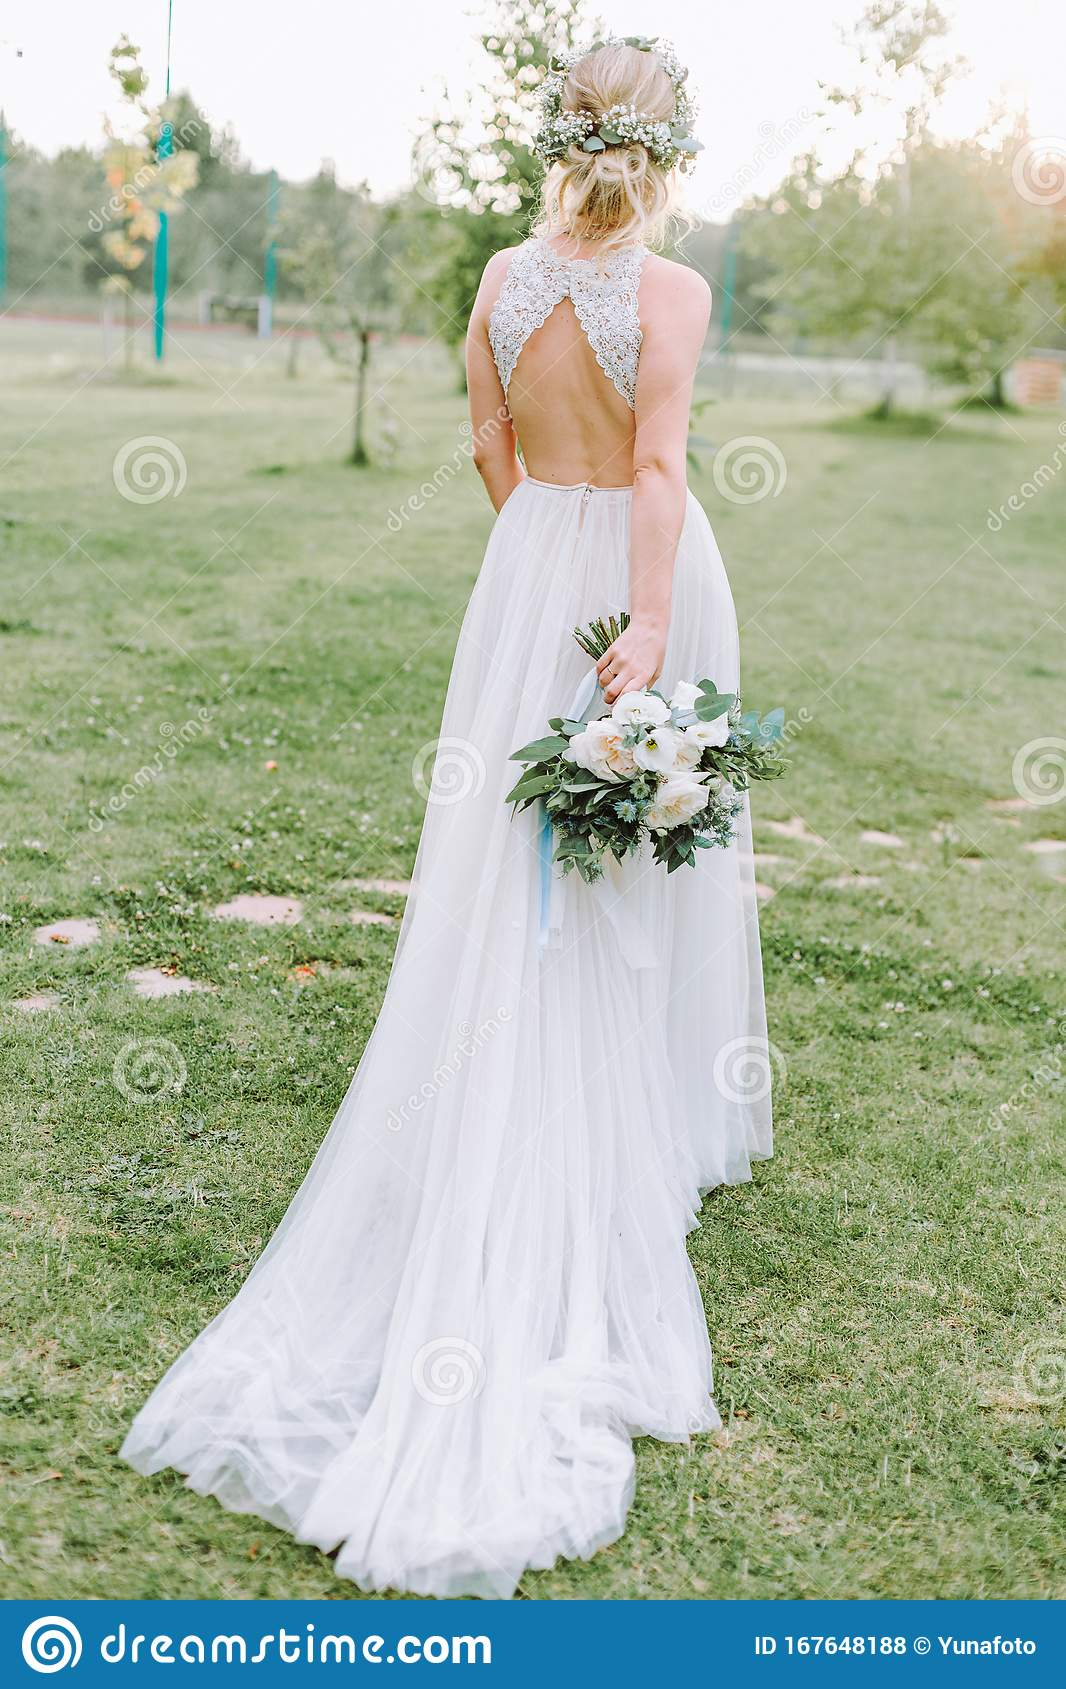 Bride Beauty Dress Wedding Outside Flowers Lawn Stock Photo Image Of Cute Garden 167648188,Wedding Dresses For Mother Of Bride Plus Size